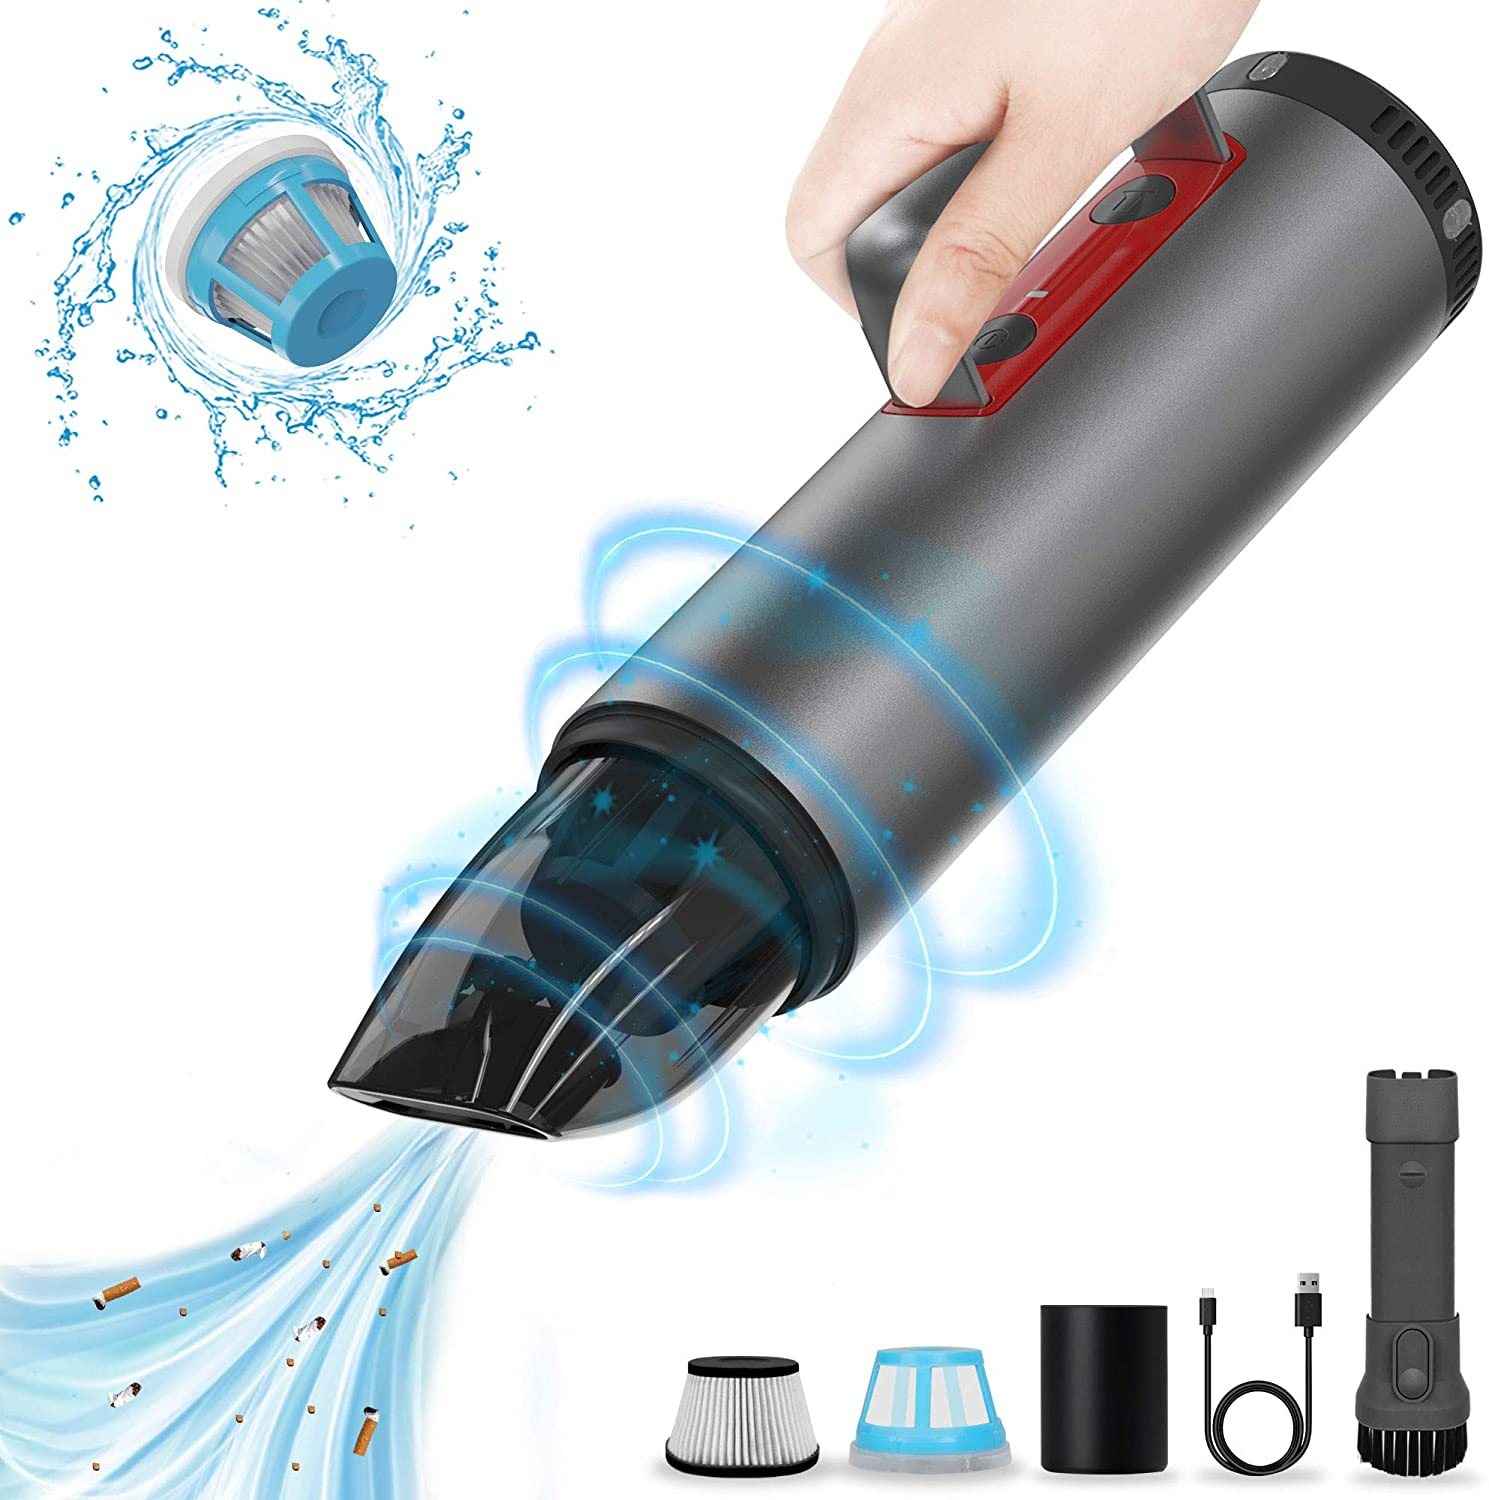 Car Vacuum Cleaner Cordless, POWERGIANT Handheld Car Rechargeable Vacuum Cleaner Car Accessories Kit with Strong Suction and LED Lights for Home Office Pet Hair Care and Car Cleaning